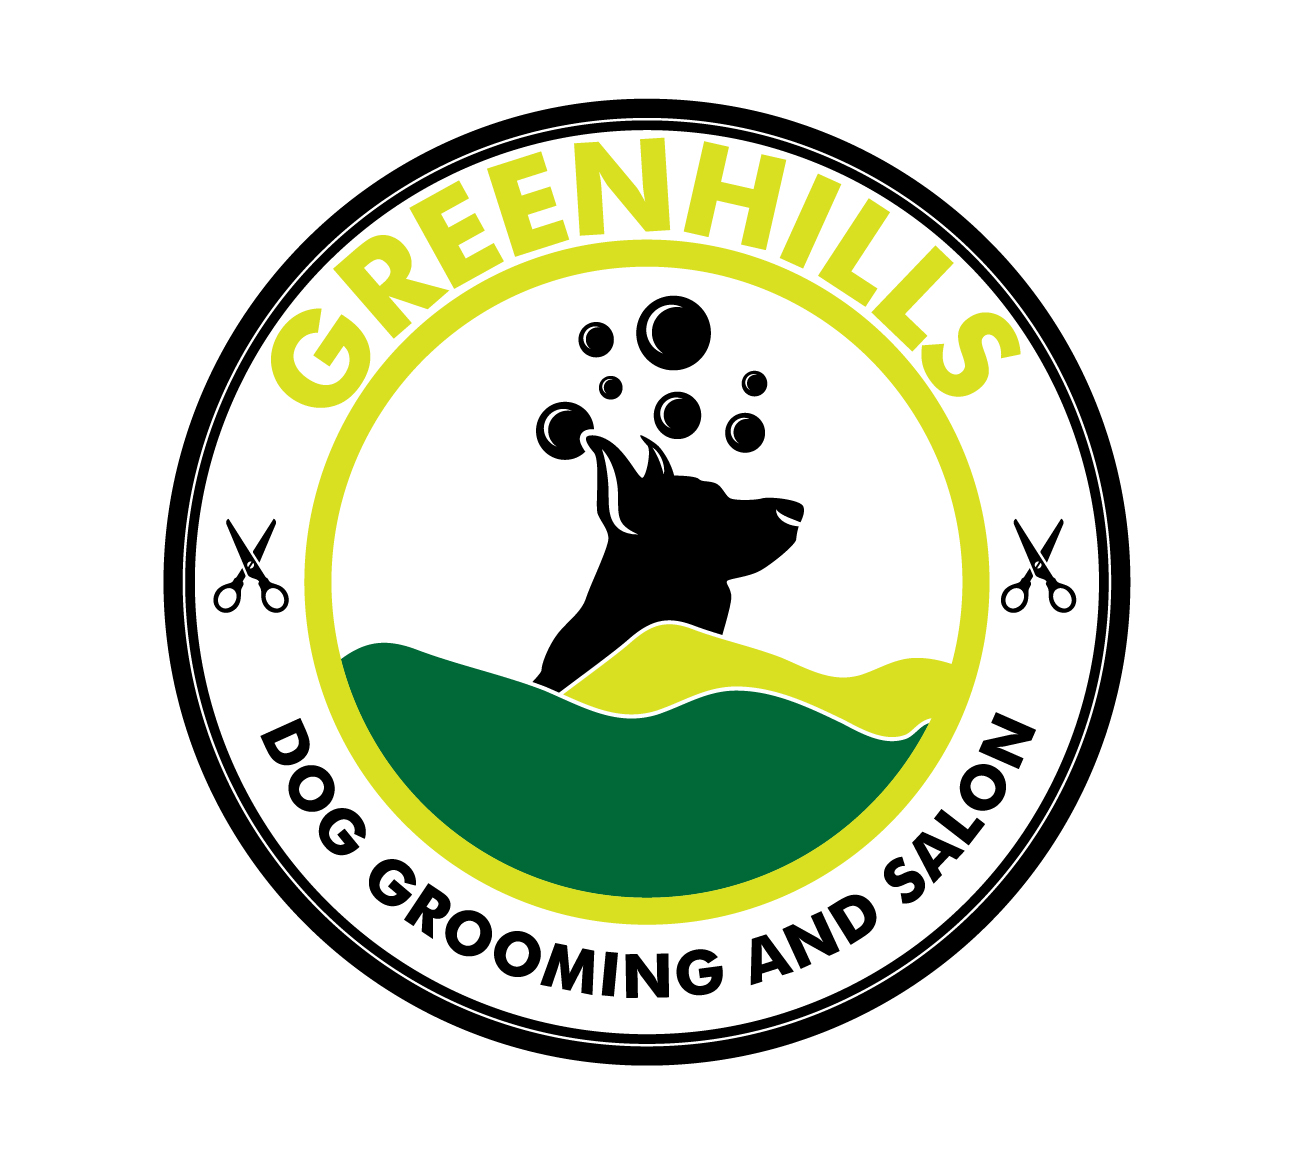 Greenhills Dog Grooming and Salon